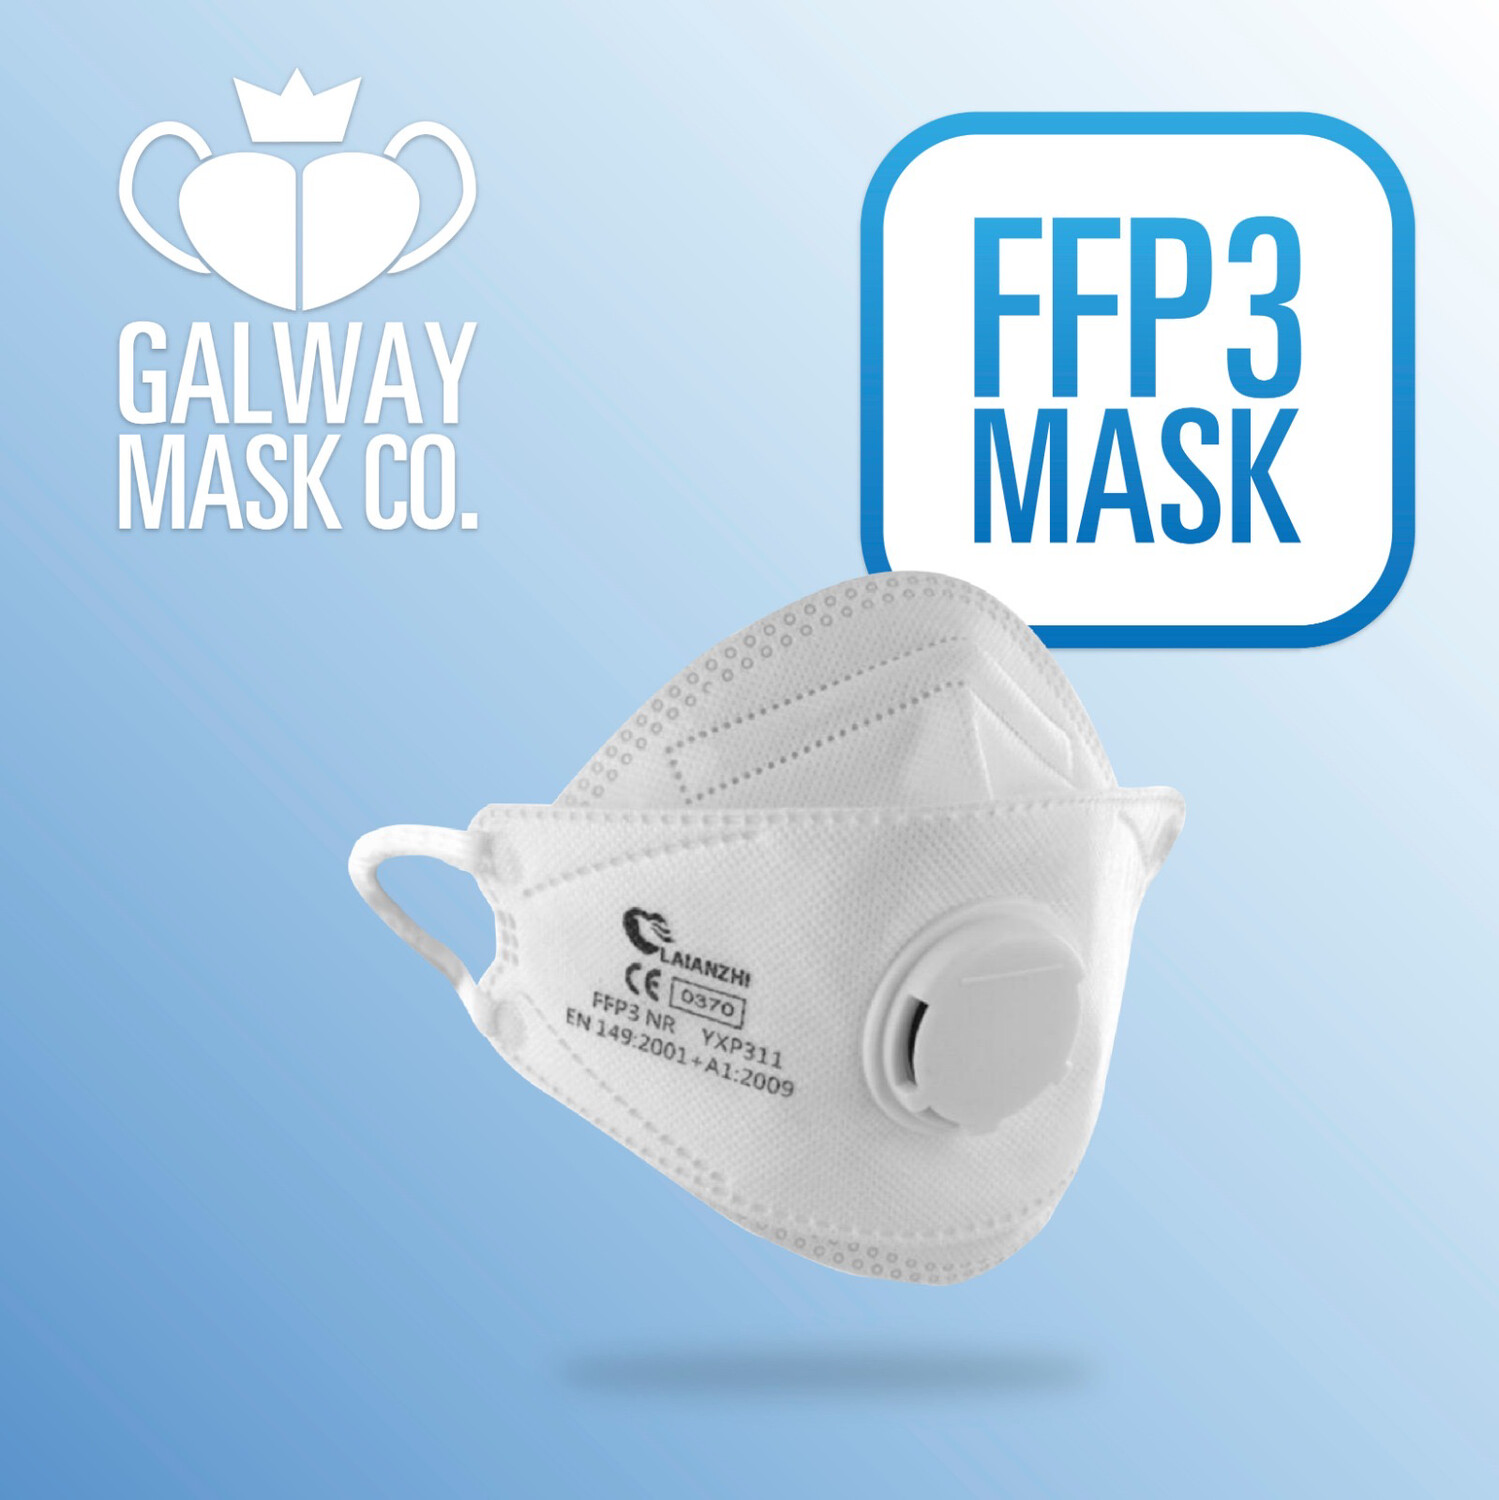 20 x FFP3 Filtering Particulate Respirator With Valve.        €4 each